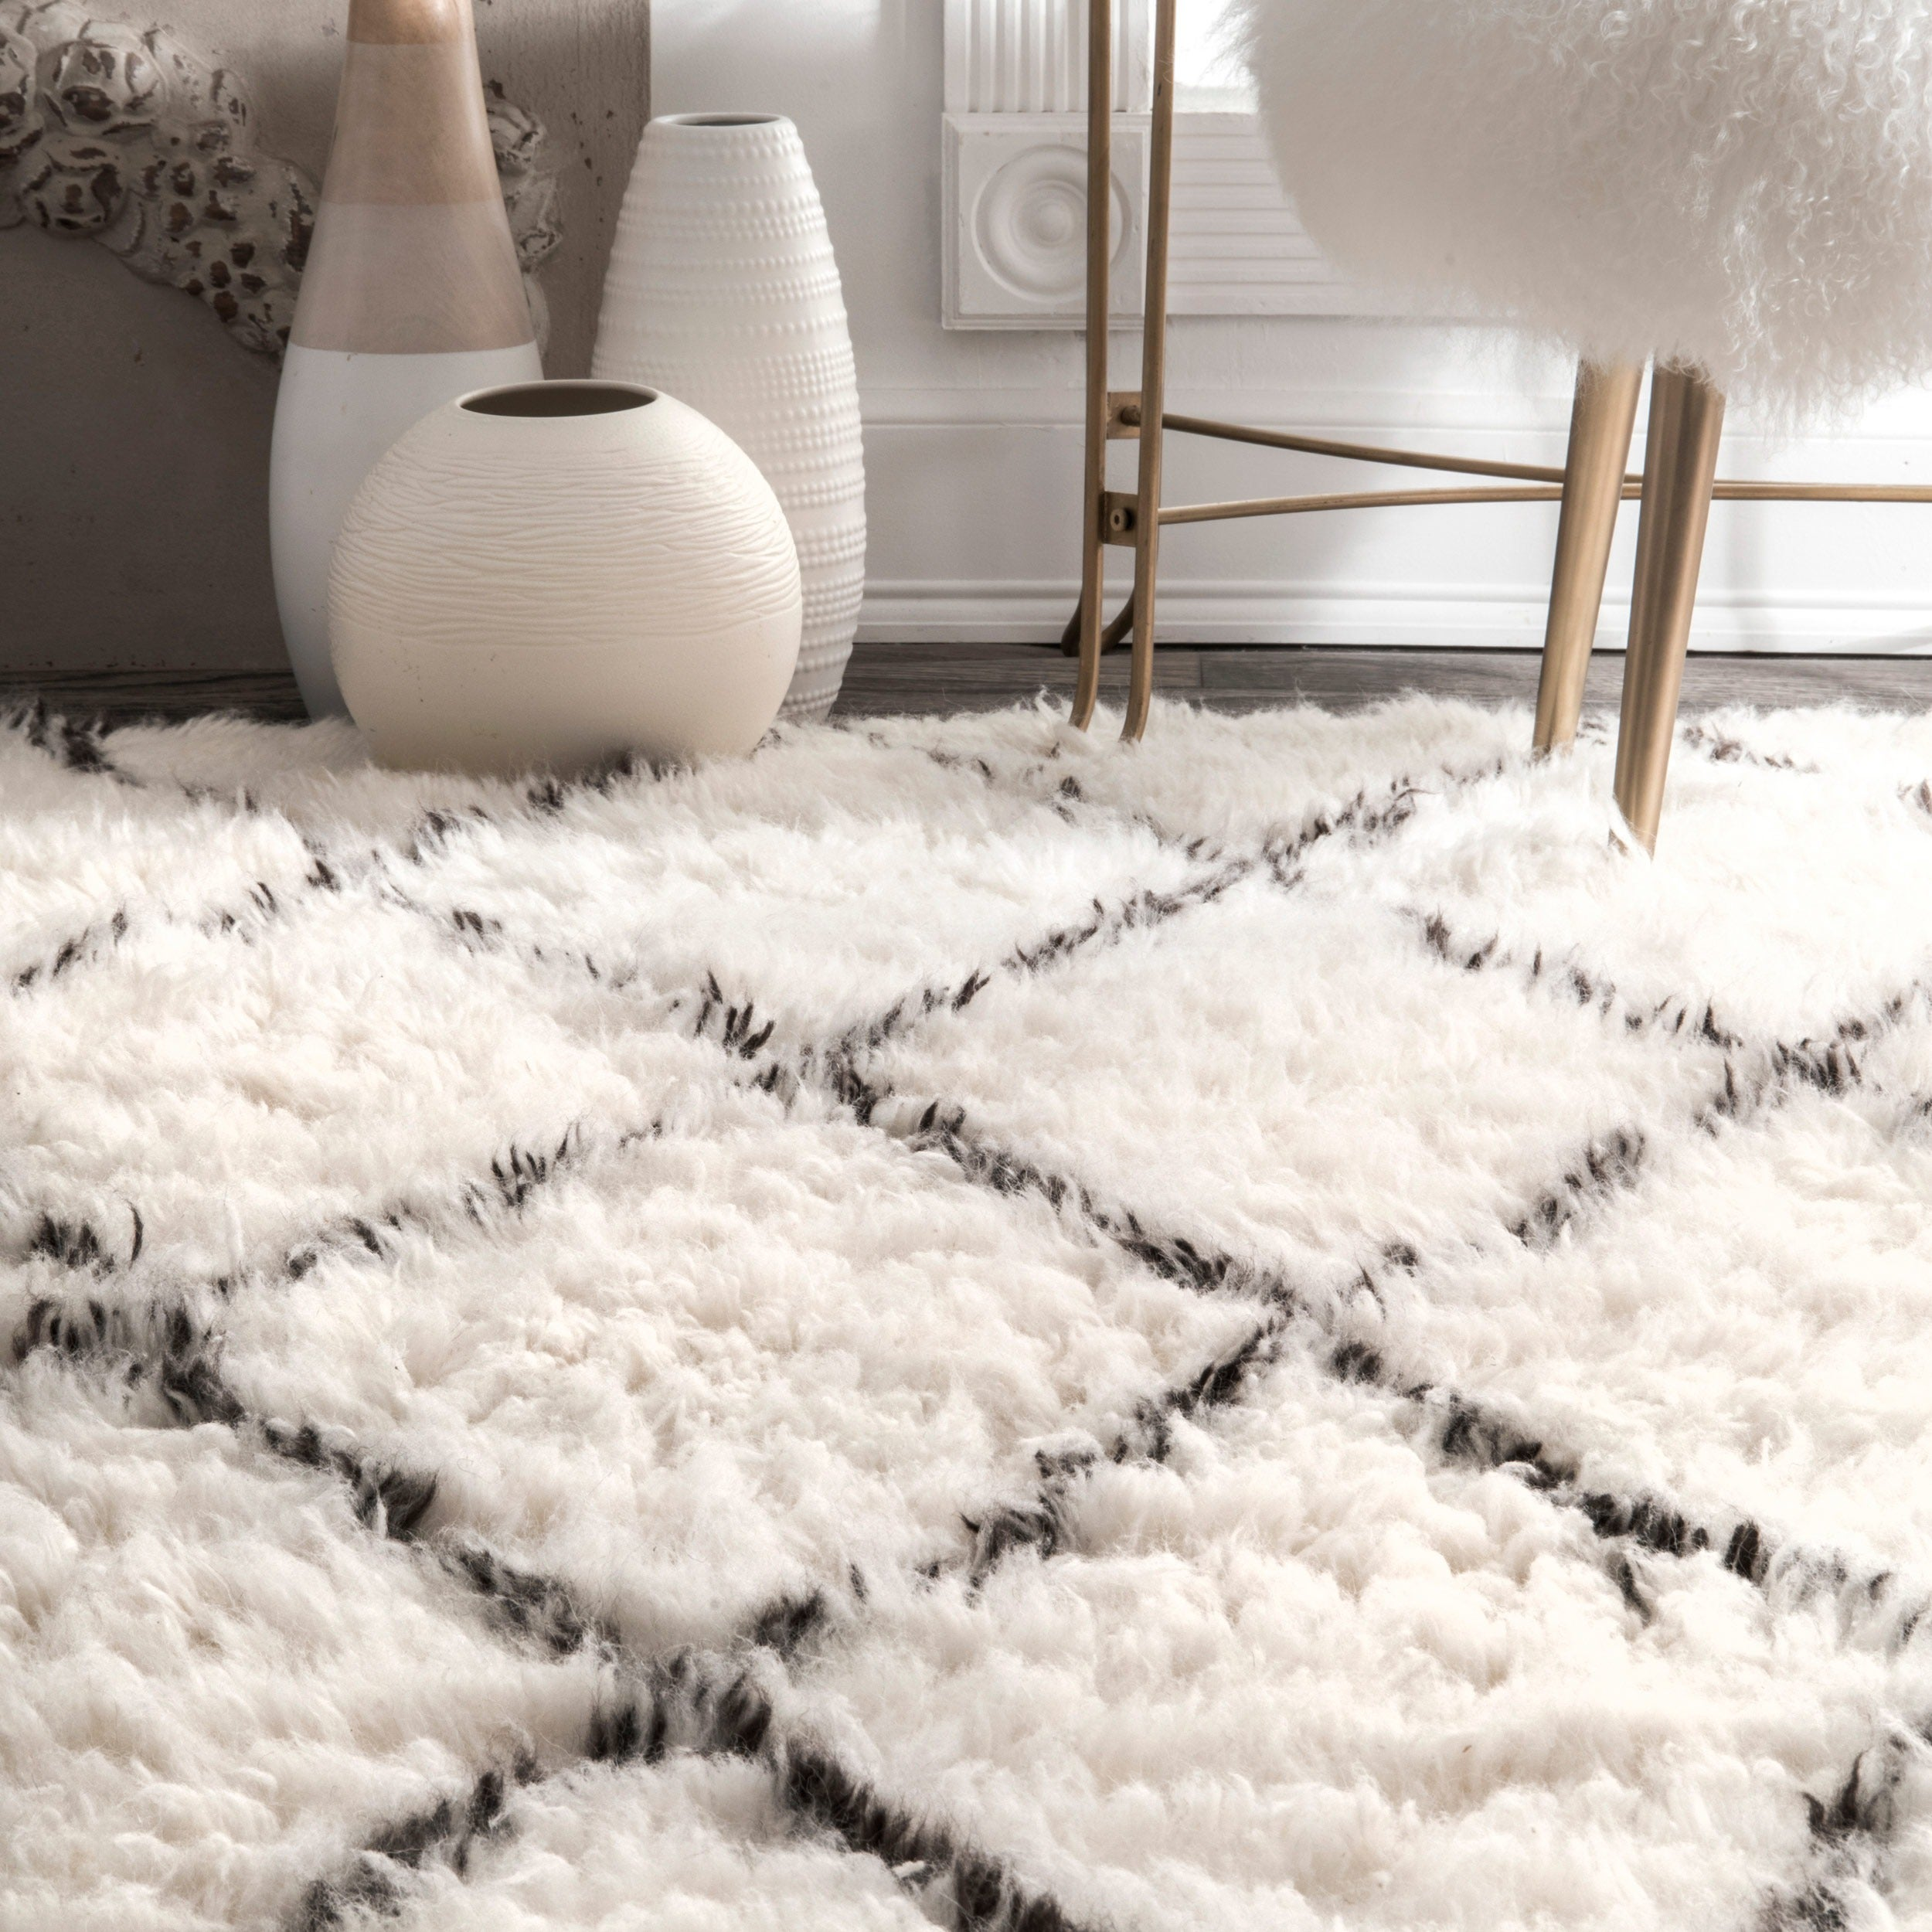 shag why new jones the company i room moroccan living in rug found design decorate a for